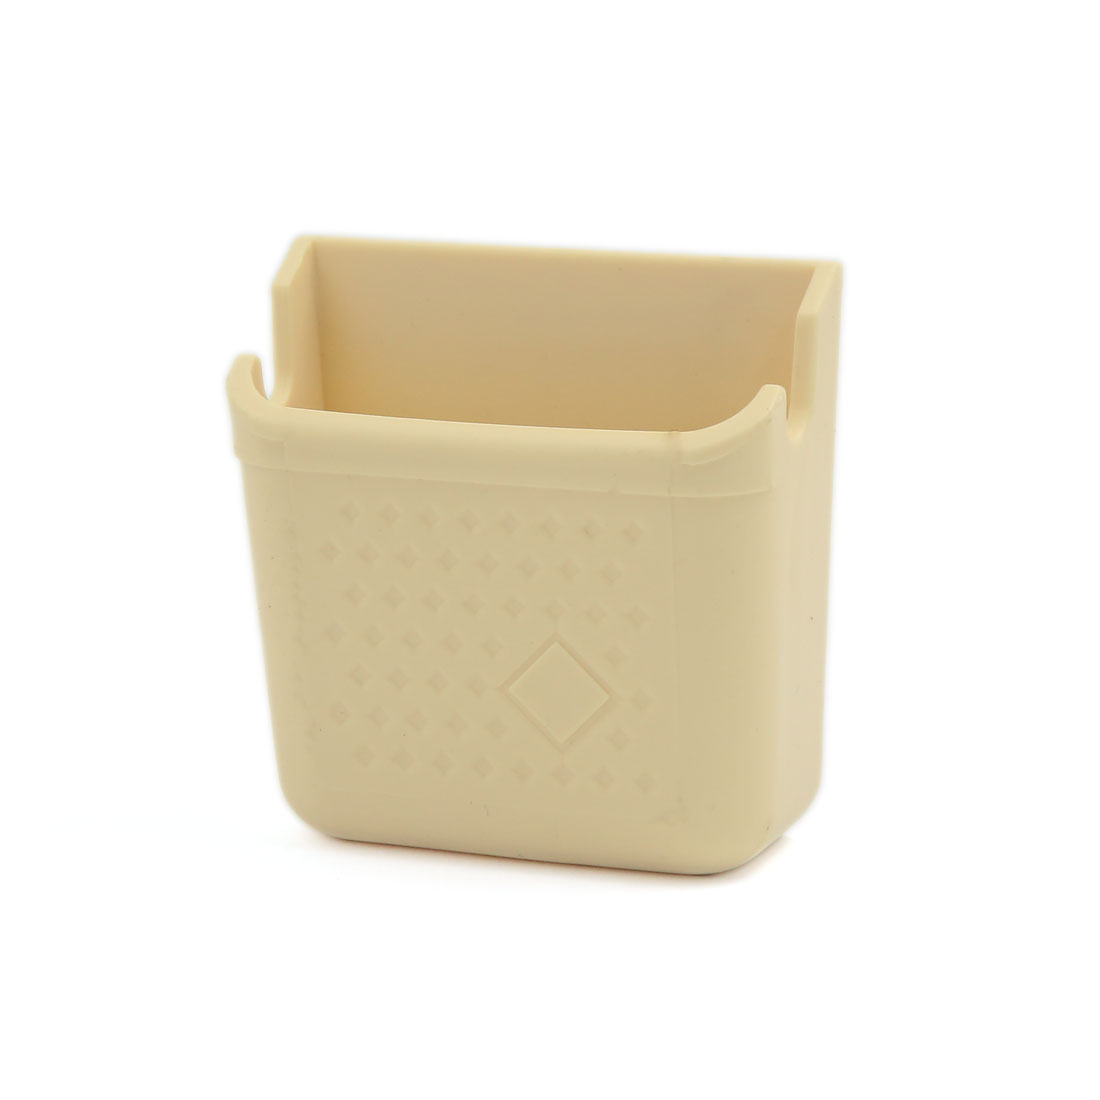 Self-adhesive Car Side Door Mount Storage Box Holder Beige for Smart Cell Phone Charger